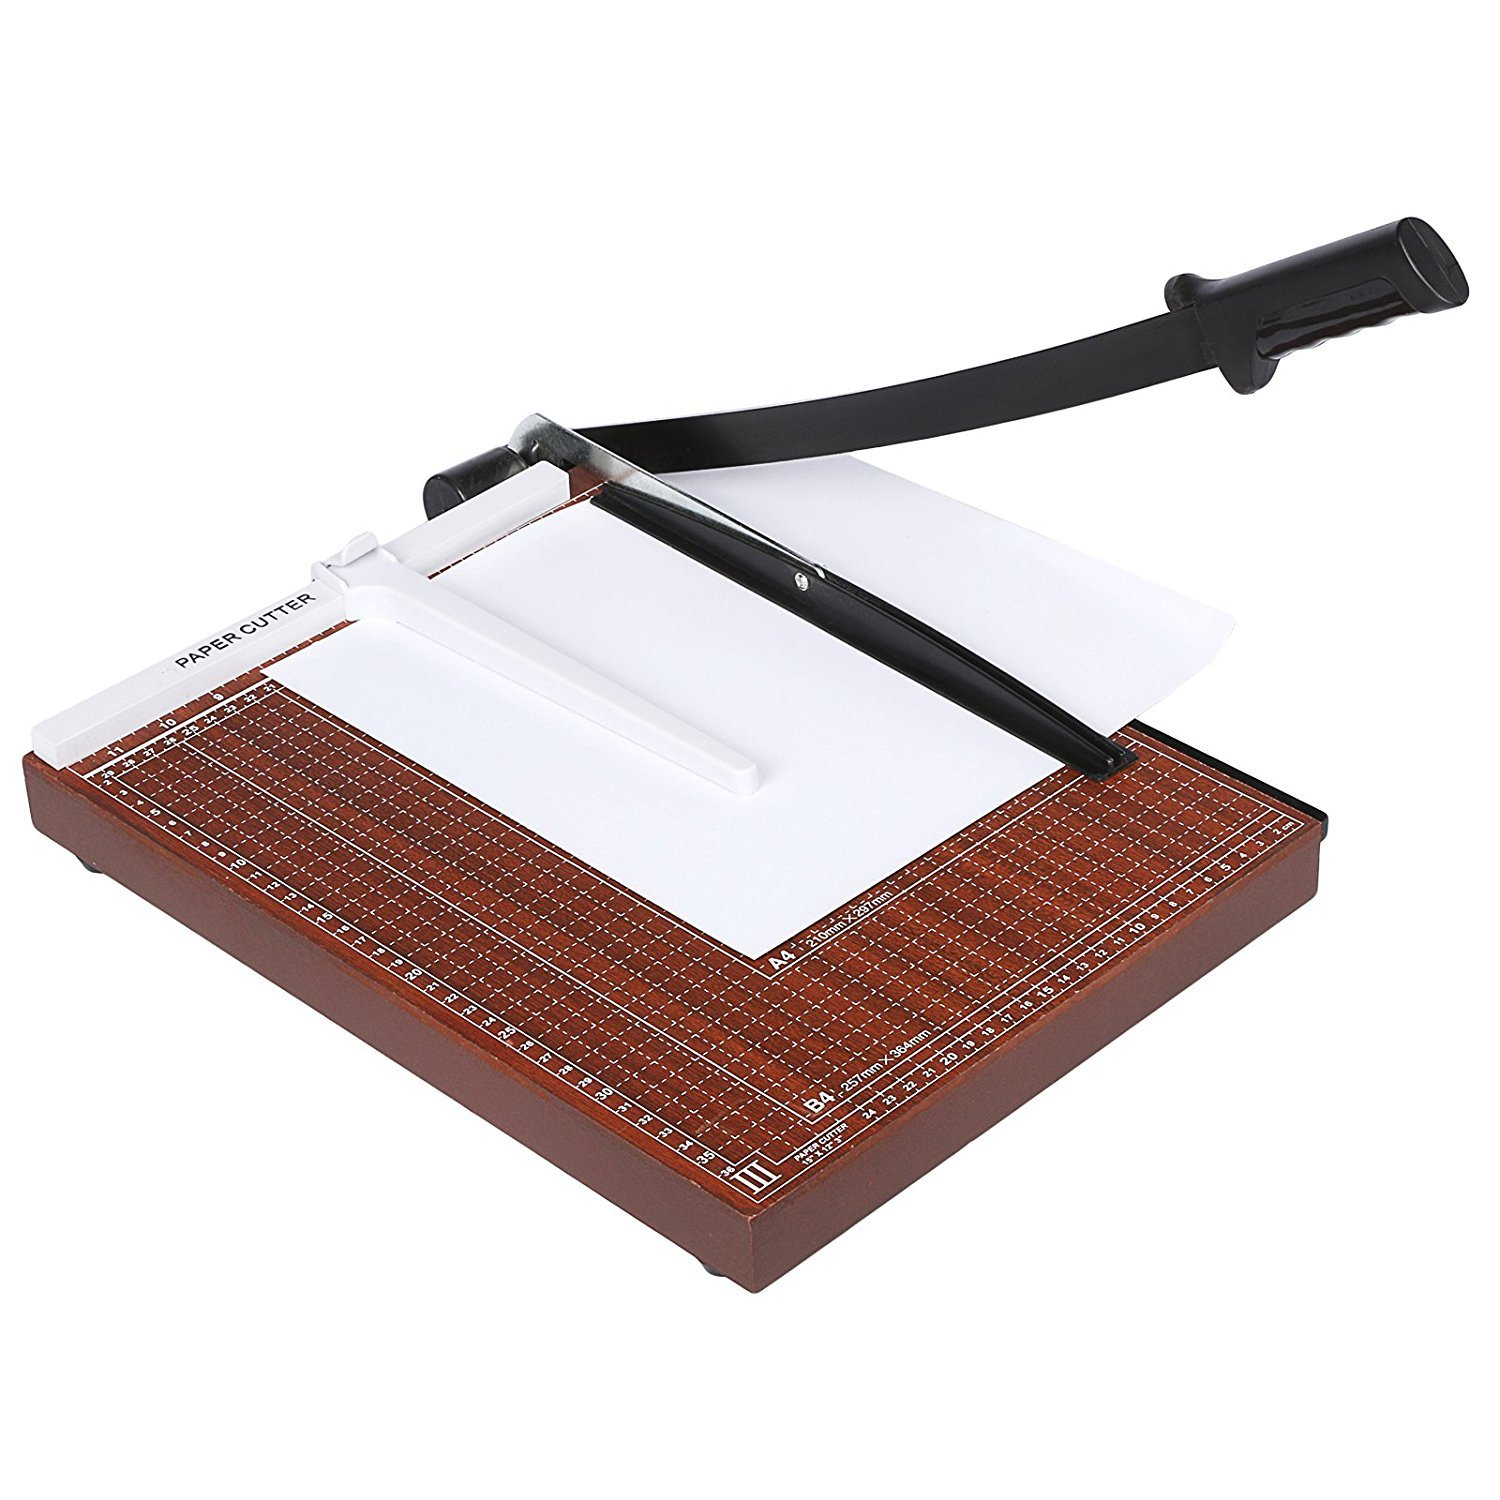 Paper Cutter 15 Inch, Photo Trimmer, Craft Guillotine Stationery for Office, 12 Sheet Capacity, Sturdy Wood Base Rateim